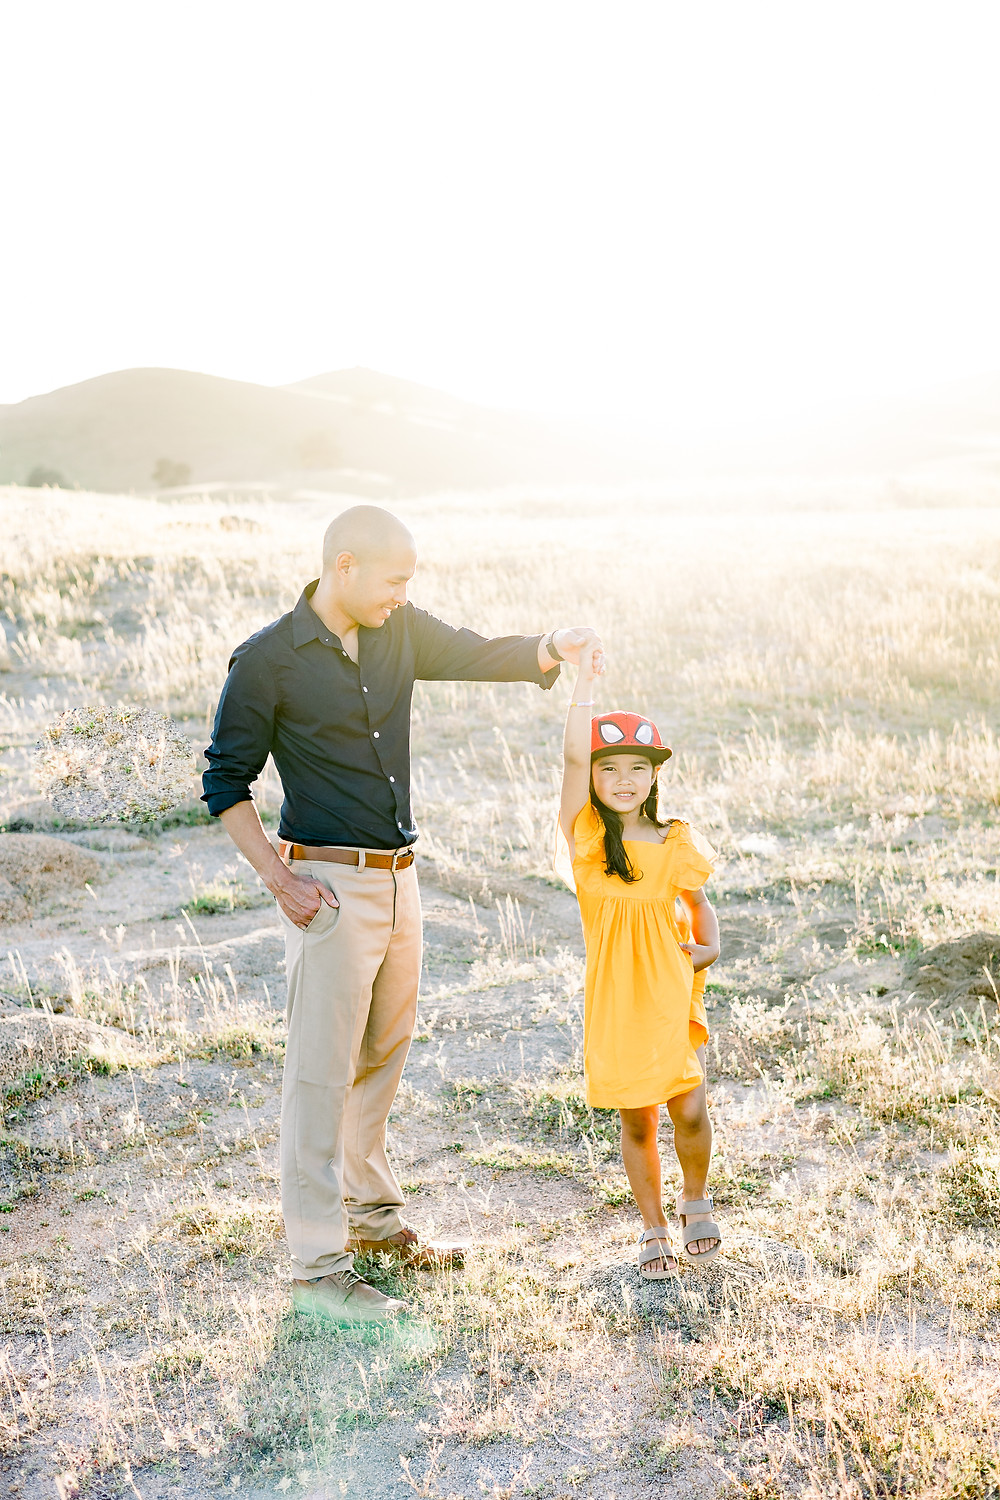 Family photo session in Fresno, CA by Ashley Norton Photography.